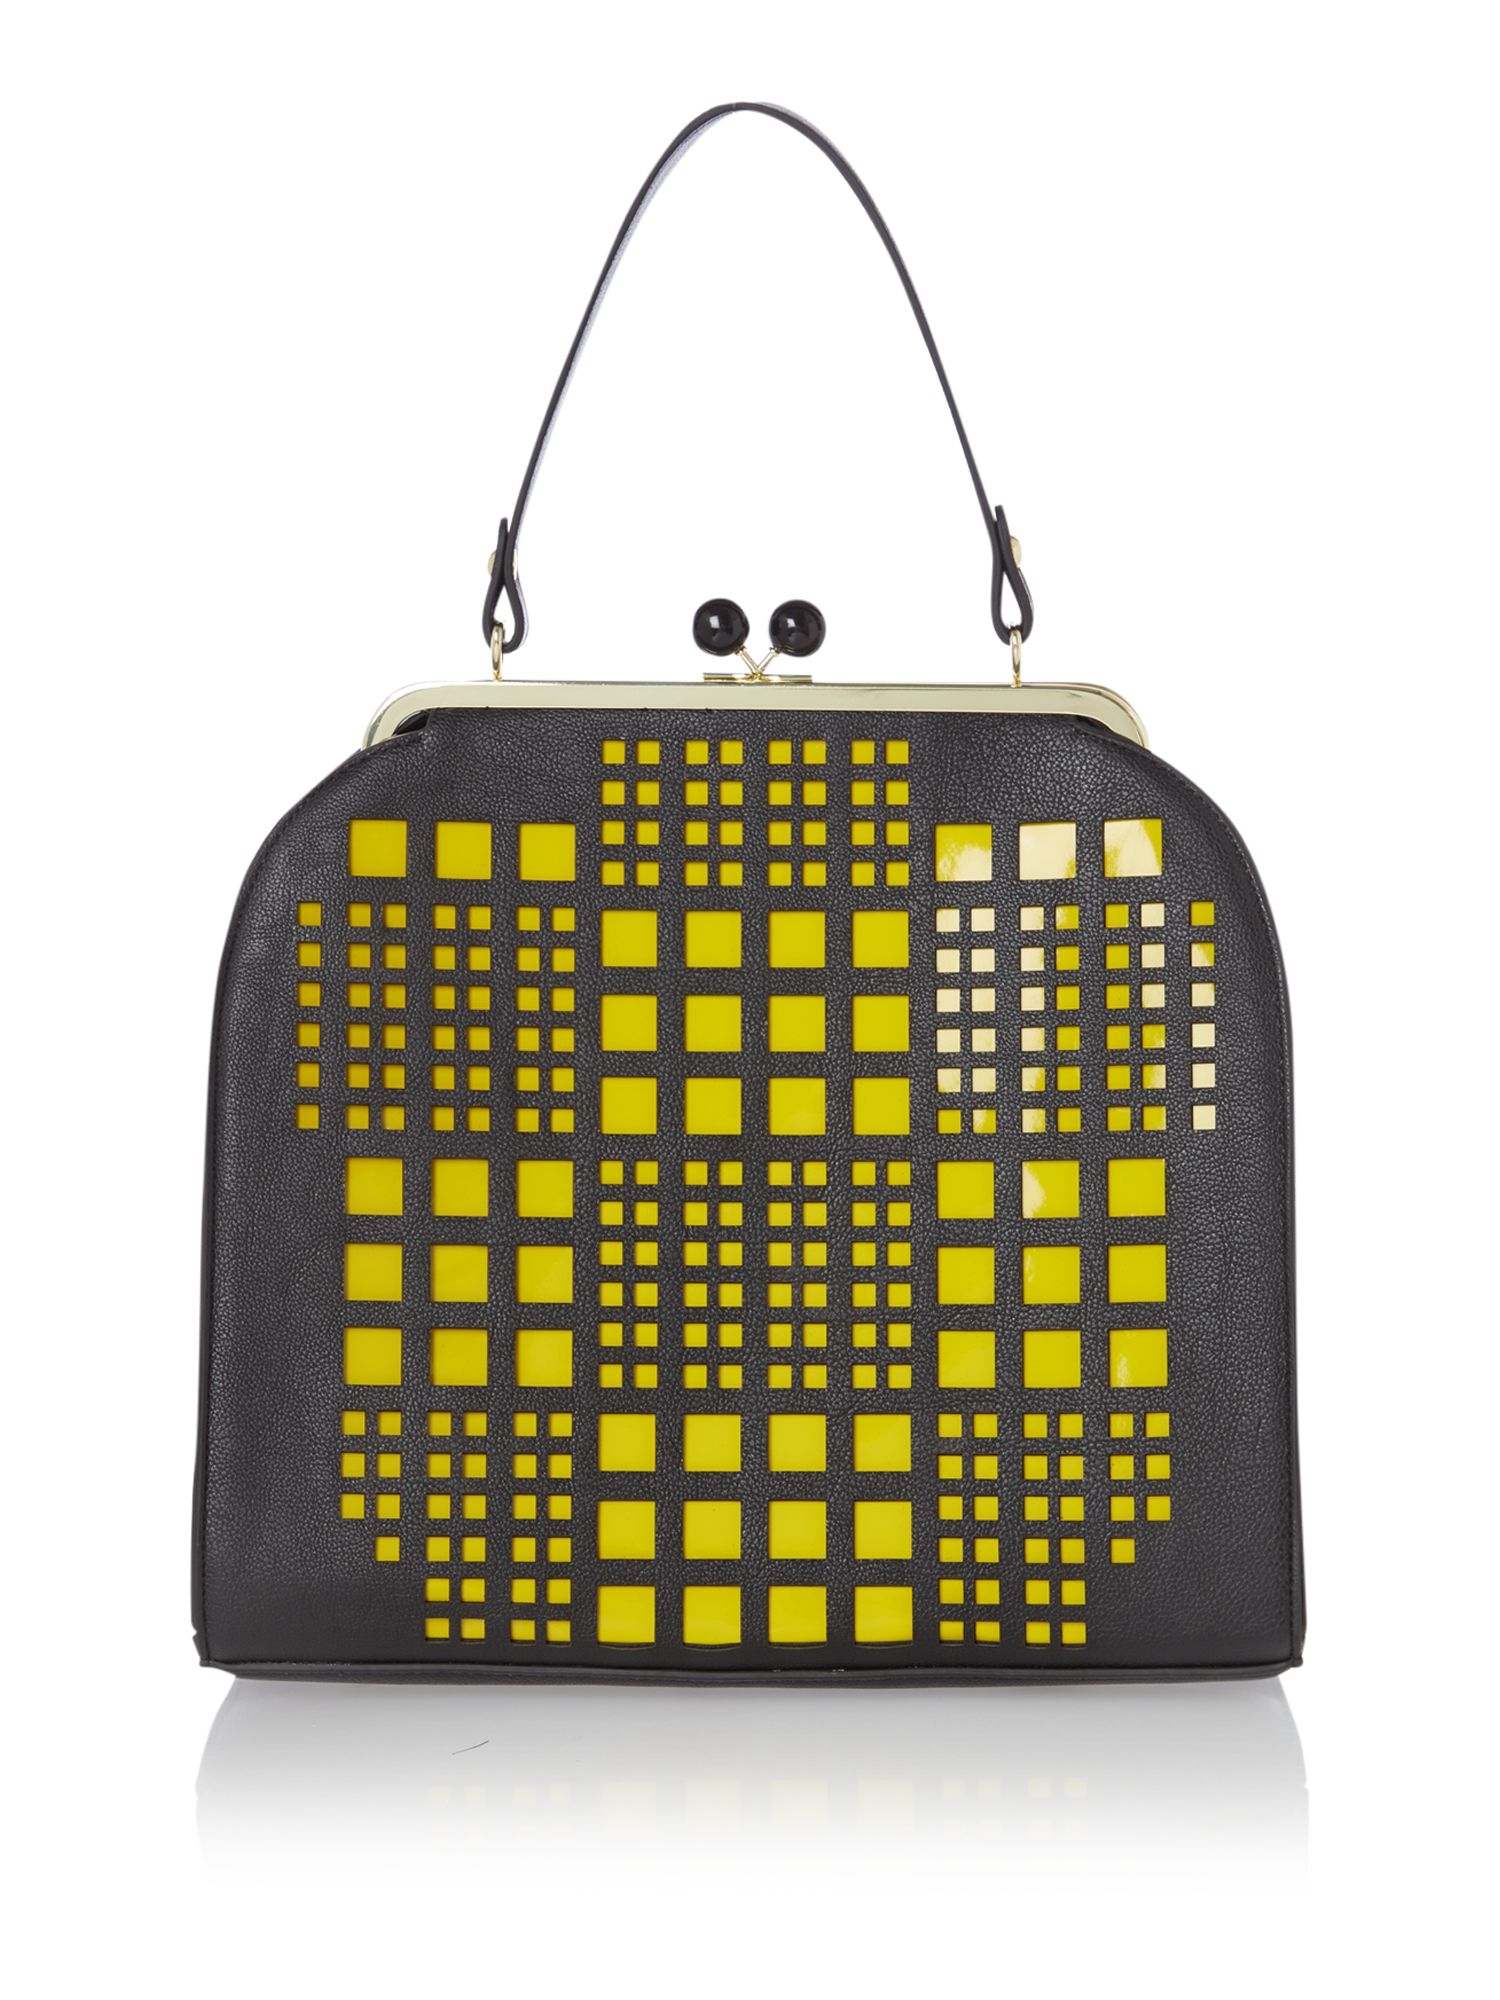 Hana perforated frame bag